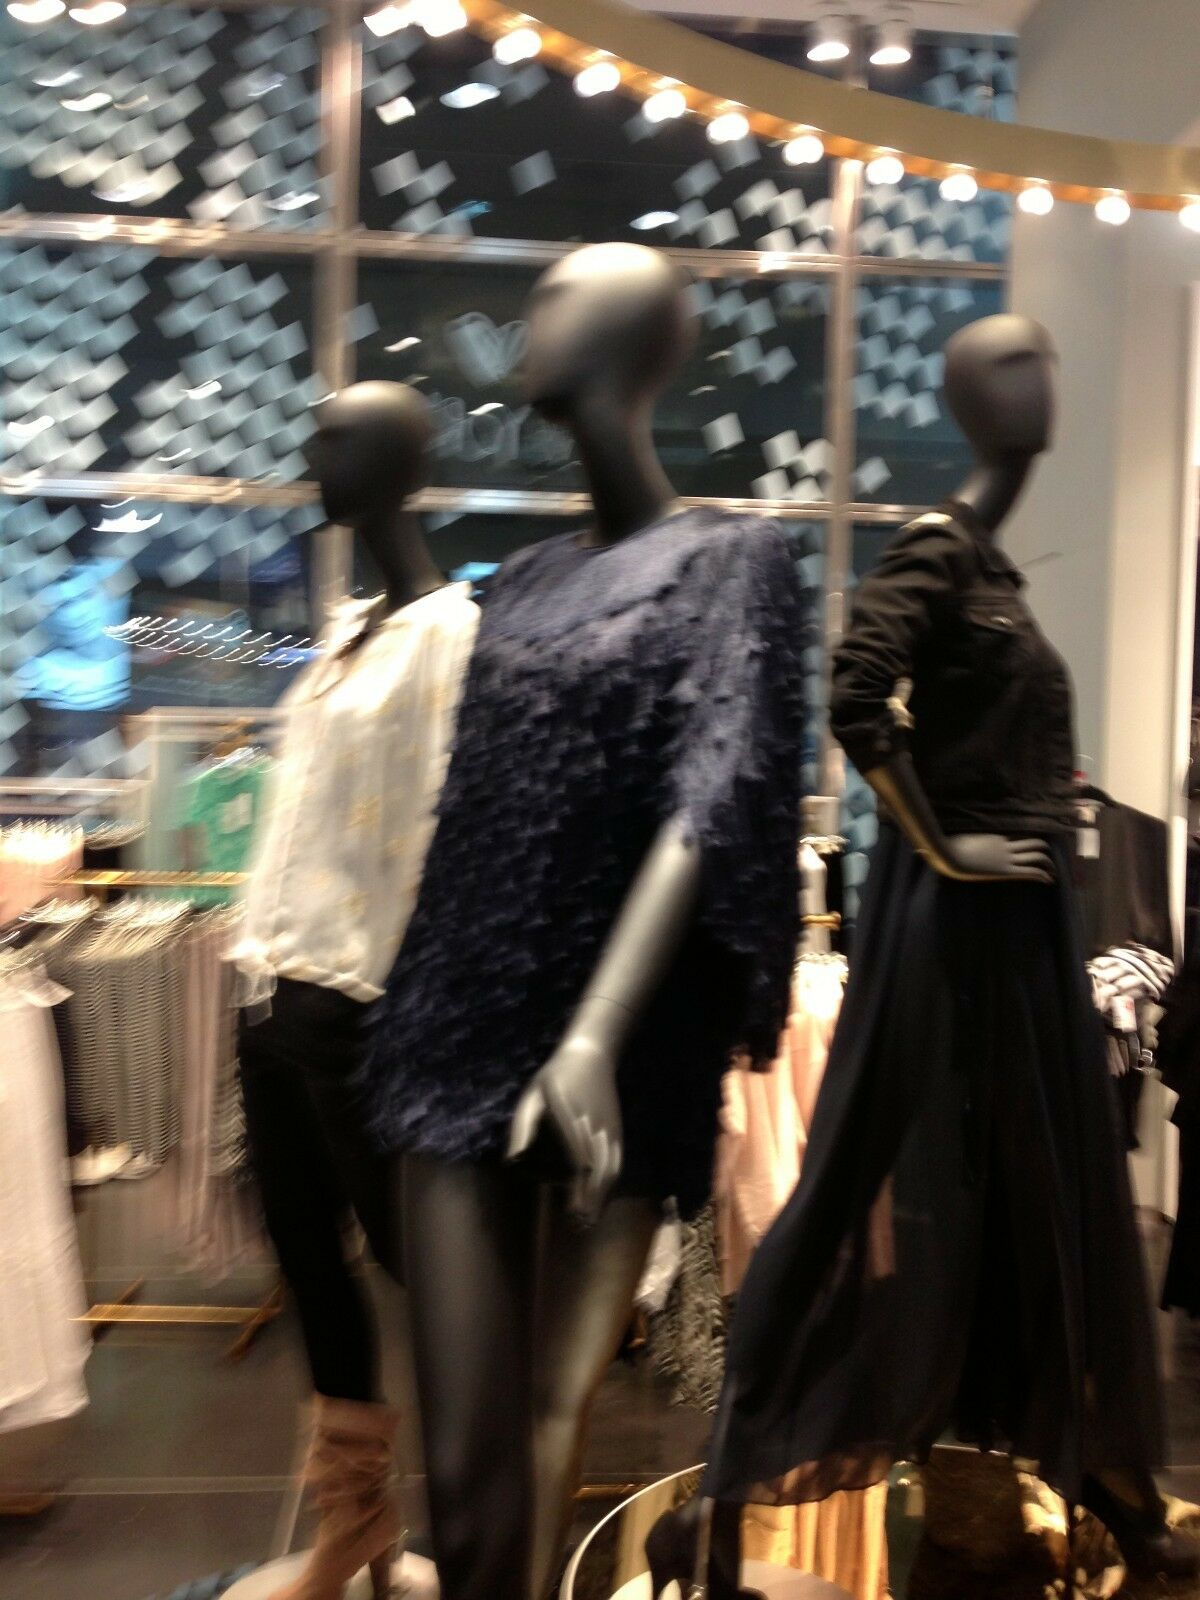 H&M SPRING 2014 COLLECTION NAVY NAVY NAVY blueE FRINGE DRESS TUNIC CONSCIOUS TREND DIVIDED 2ffc00